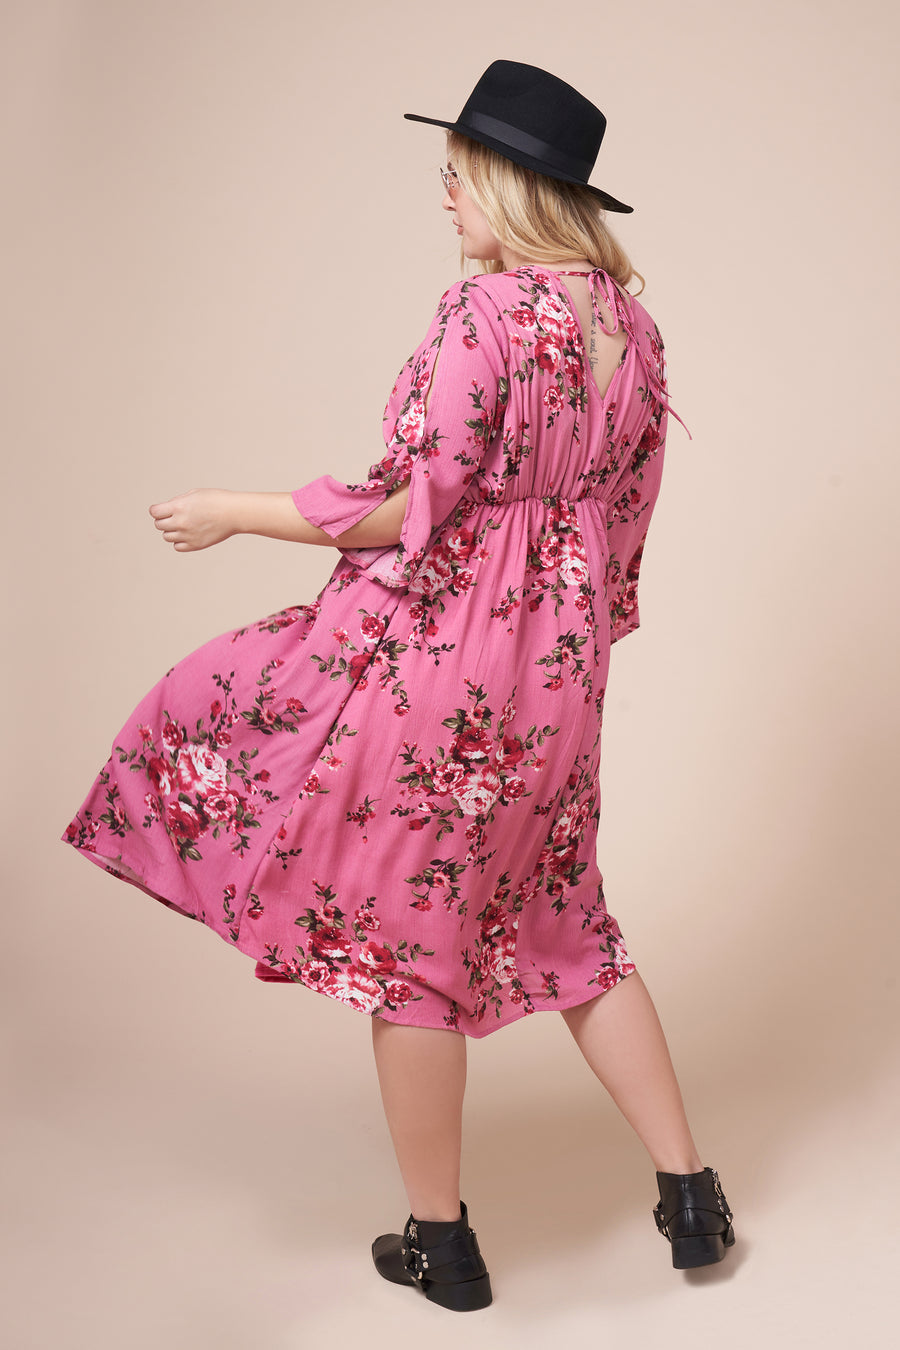 CHLOE Floral Dress